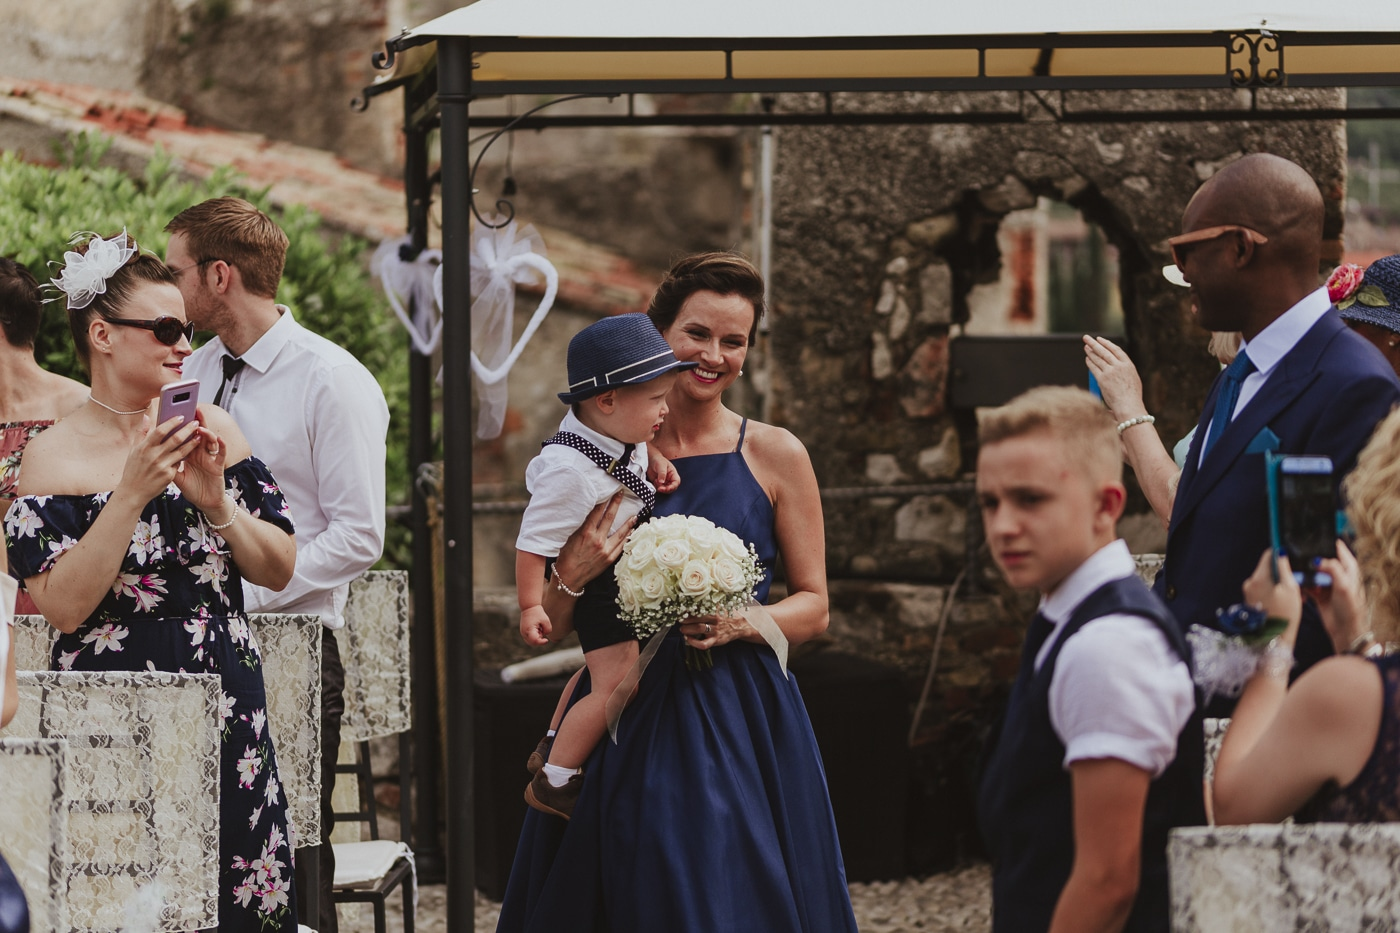 Bridesmaid and small boy in hat wait at the end of the aisle